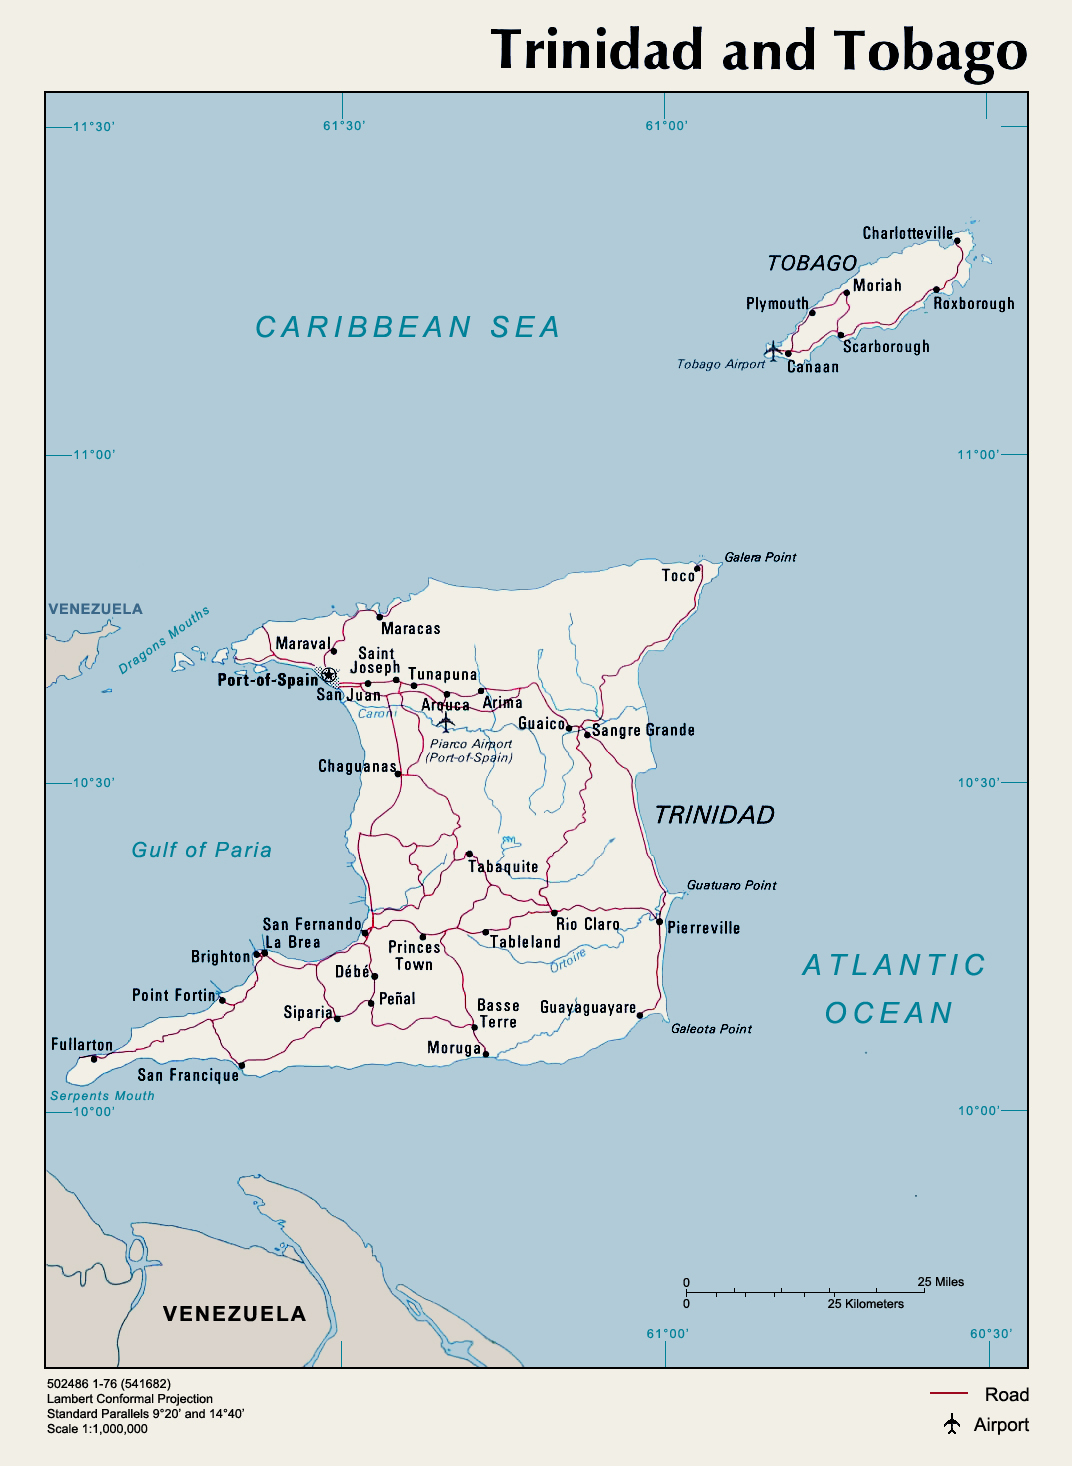 Trinidad Tobago Political Map